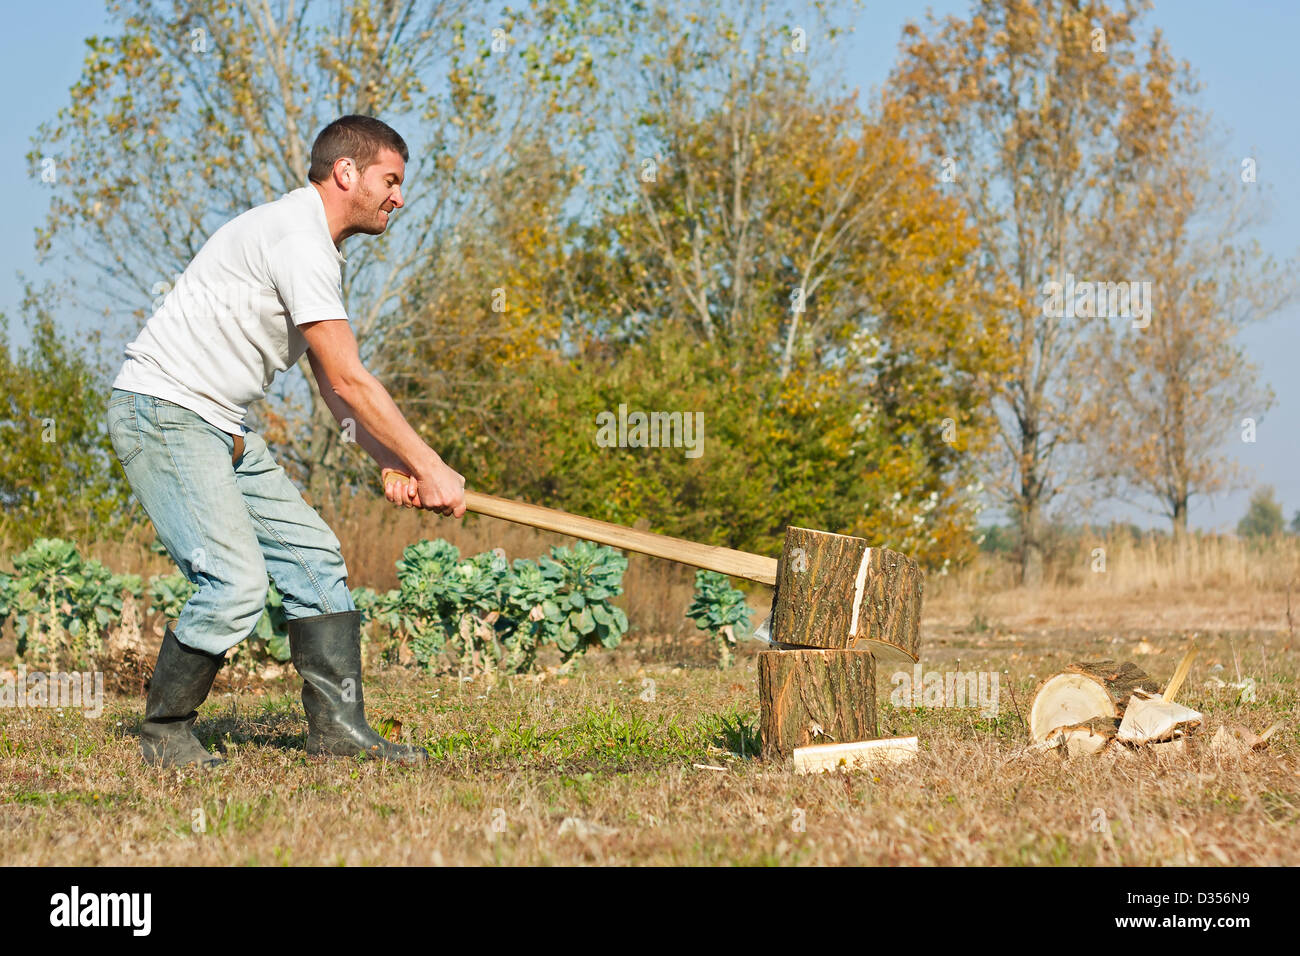 Male figure chopping or slitting winter wood against a rural Autumn backdrop - Stock Image